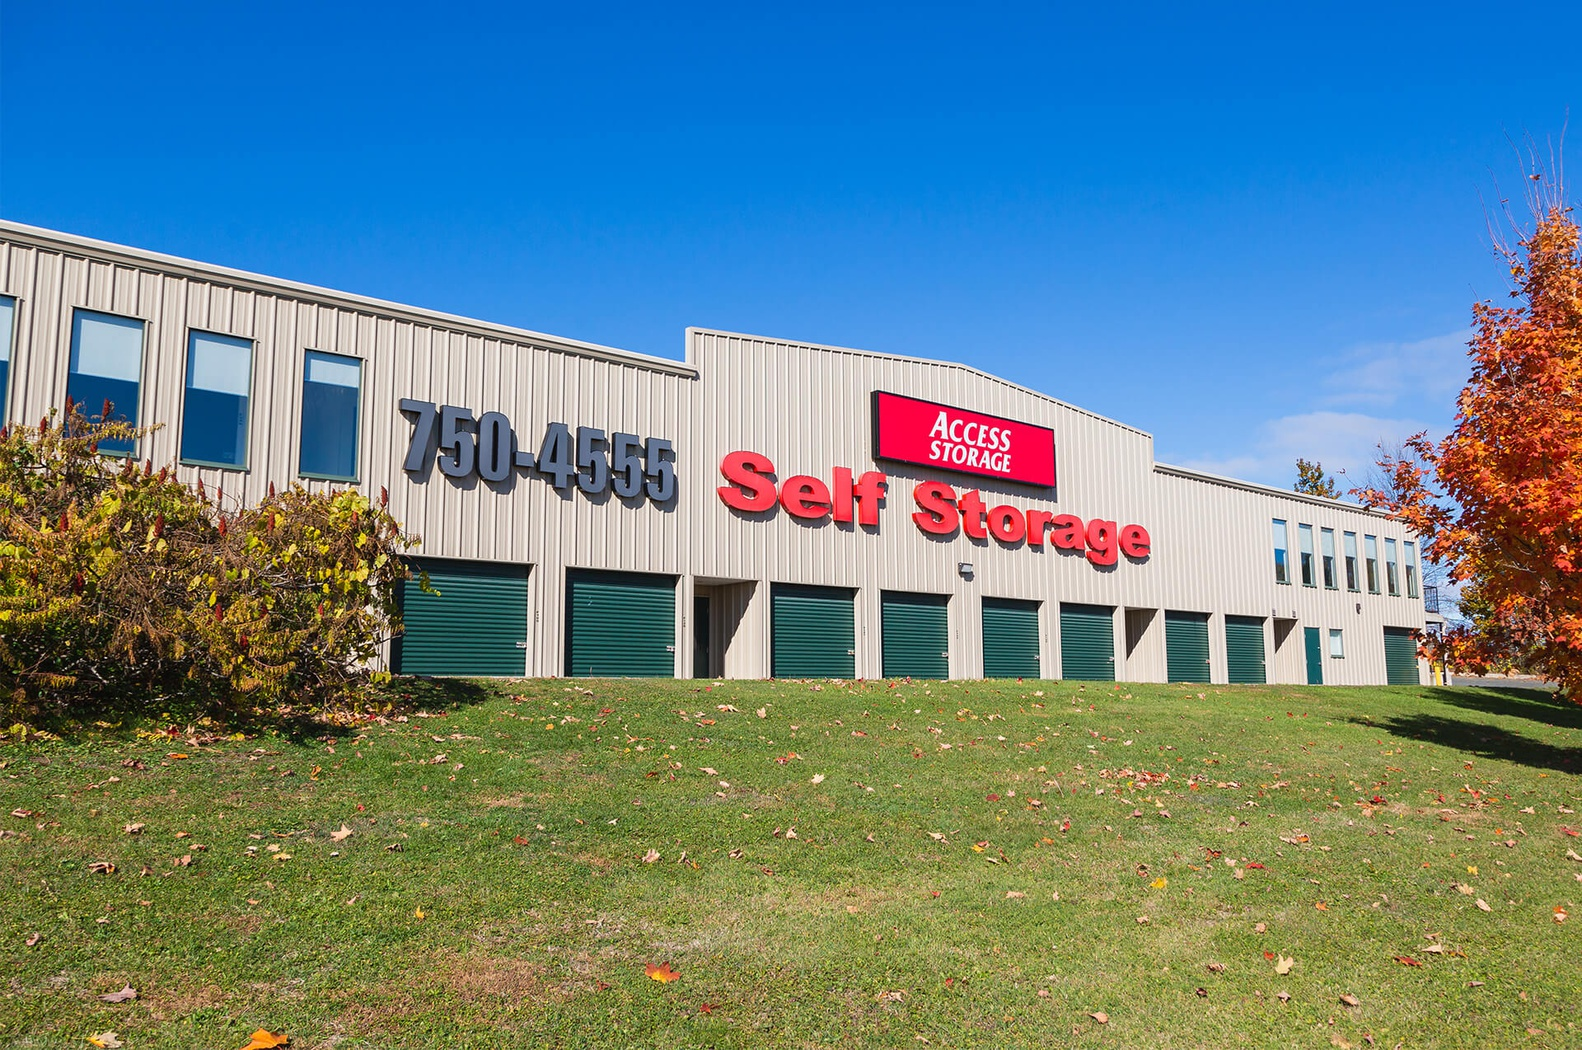 Rent Peterborough South storage units at 1850 Fisher Dr. We offer a wide-range of affordable self storage units and your first 4 weeks are free!